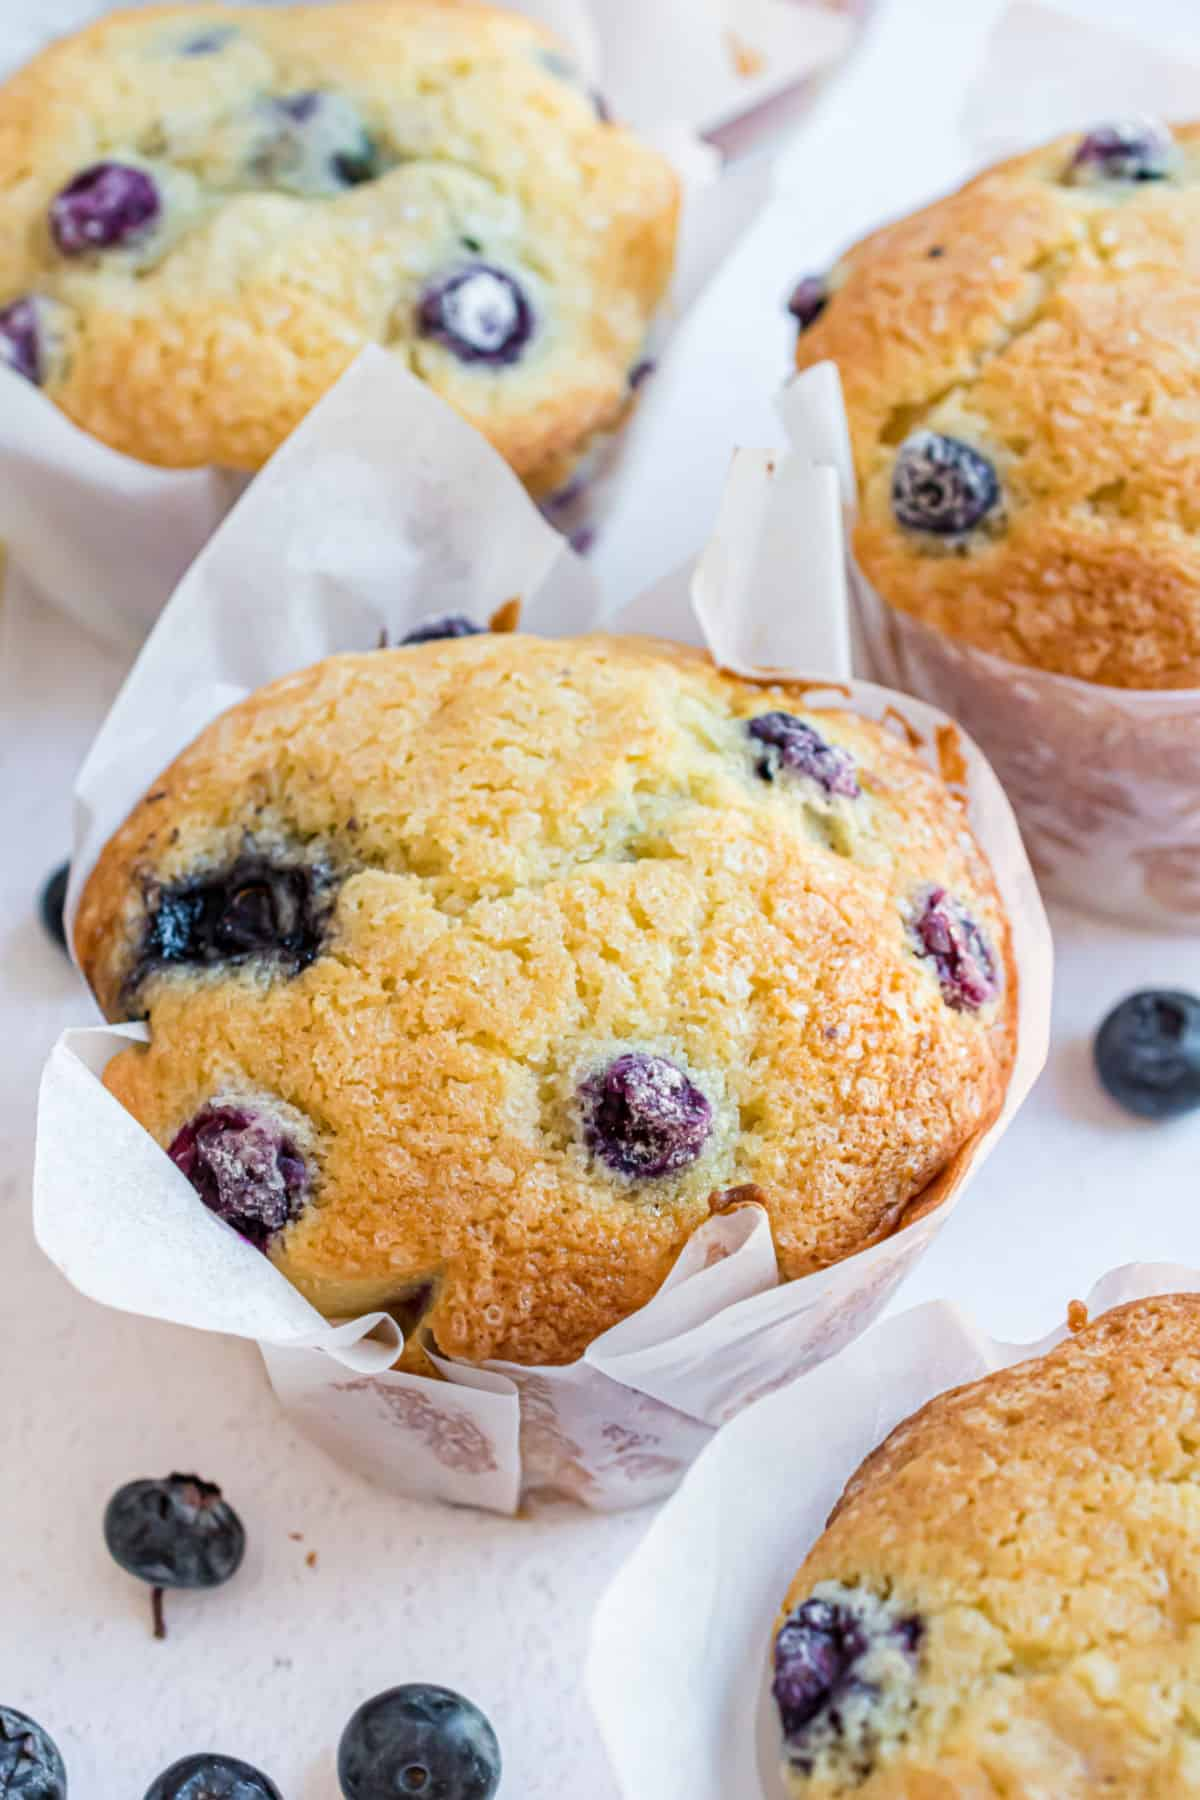 Blueberry muffins baked in parchment paper liners.